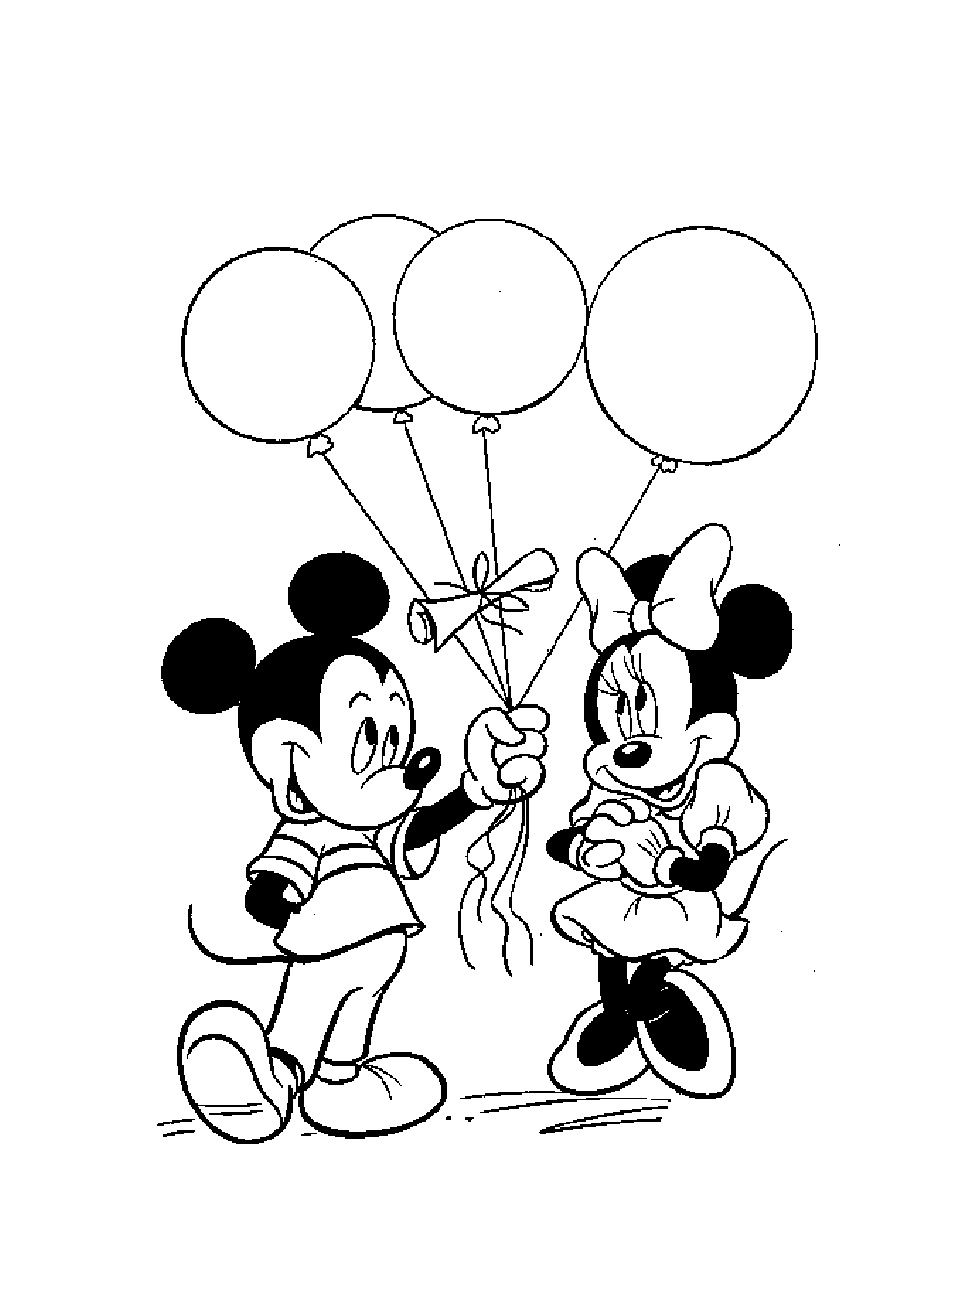 26 Antique Coloriage Mickey Et Ses Amis Images  Imagens do mickey